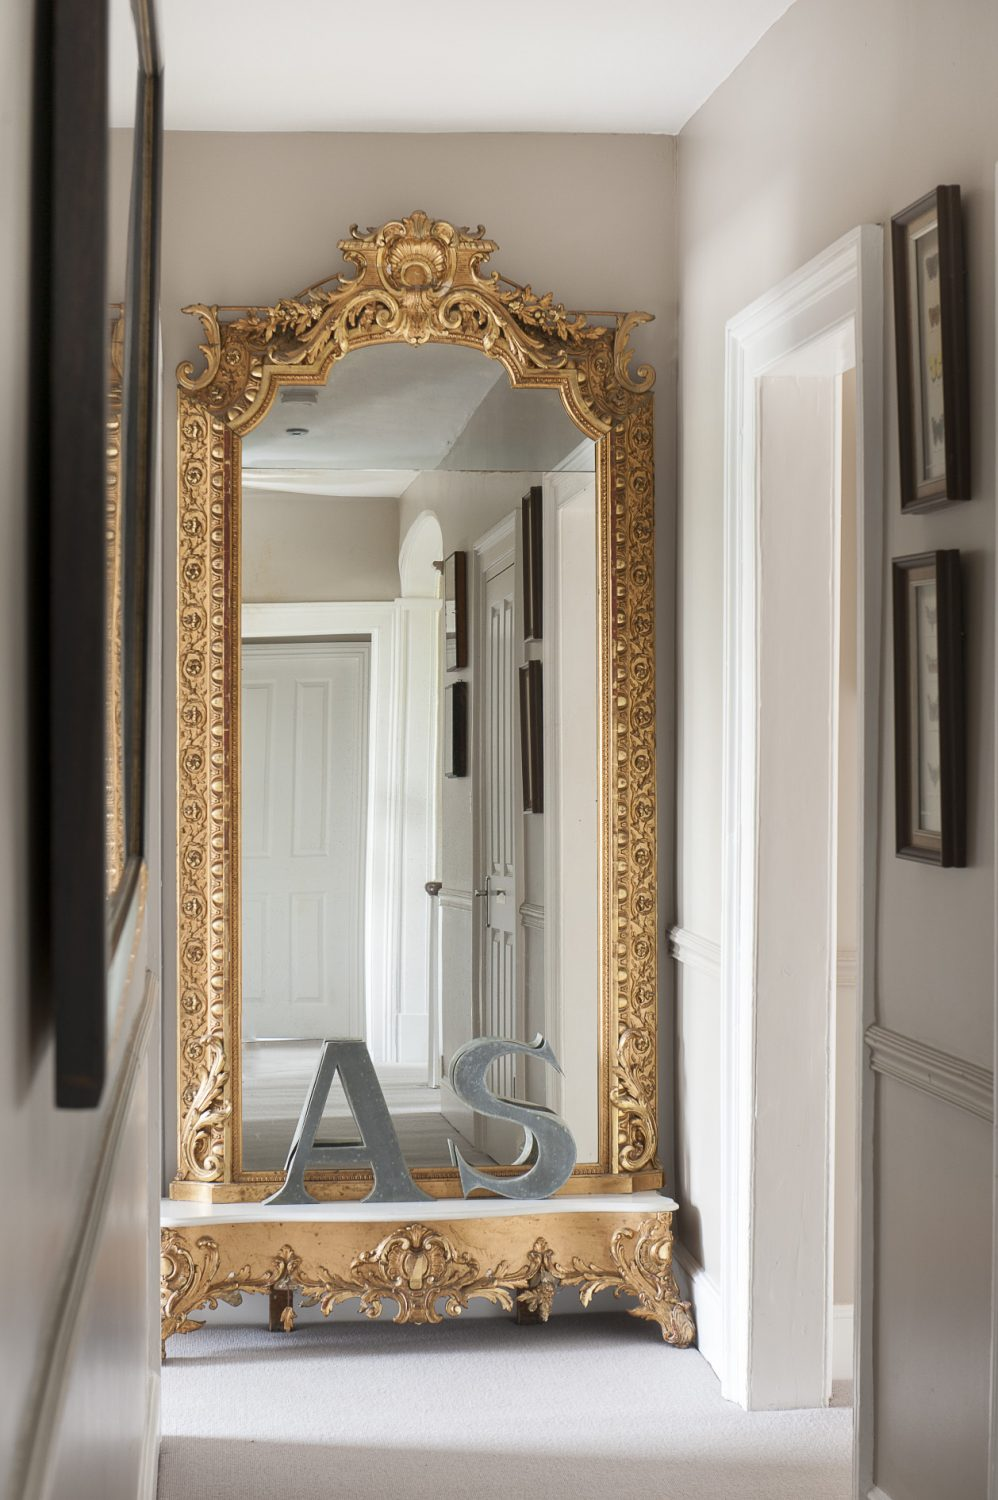 A huge, more-than-full-length mirror takes pride of place on the upstairs landing, reflecting the natural light which floods into the bedrooms through traditional sash windows